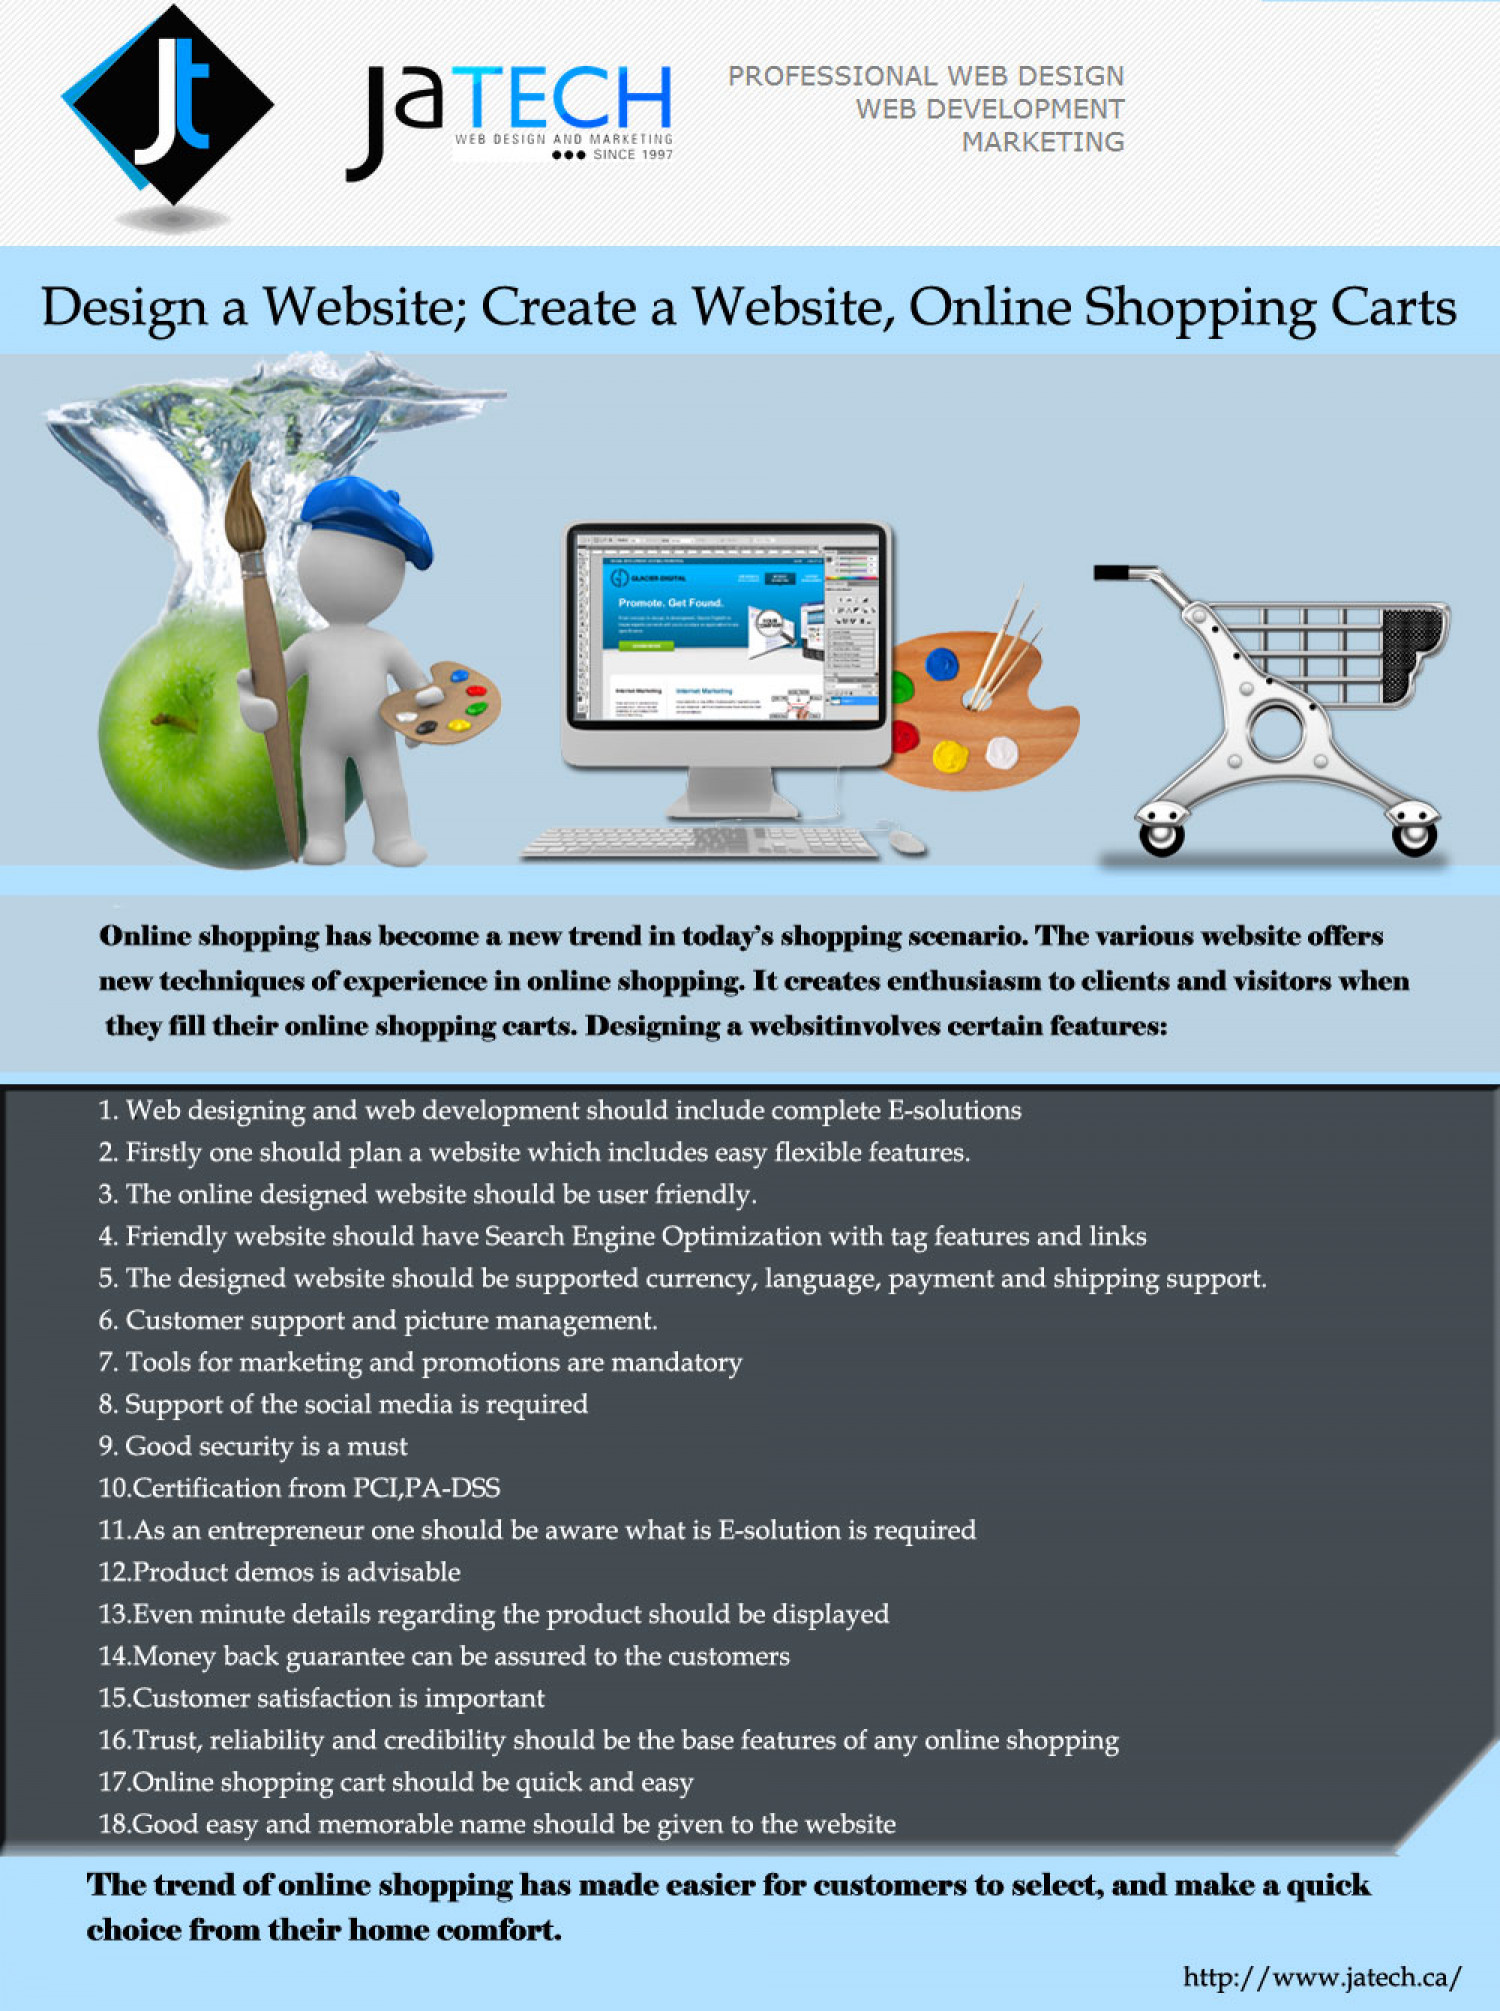 Web Page Design Infographic